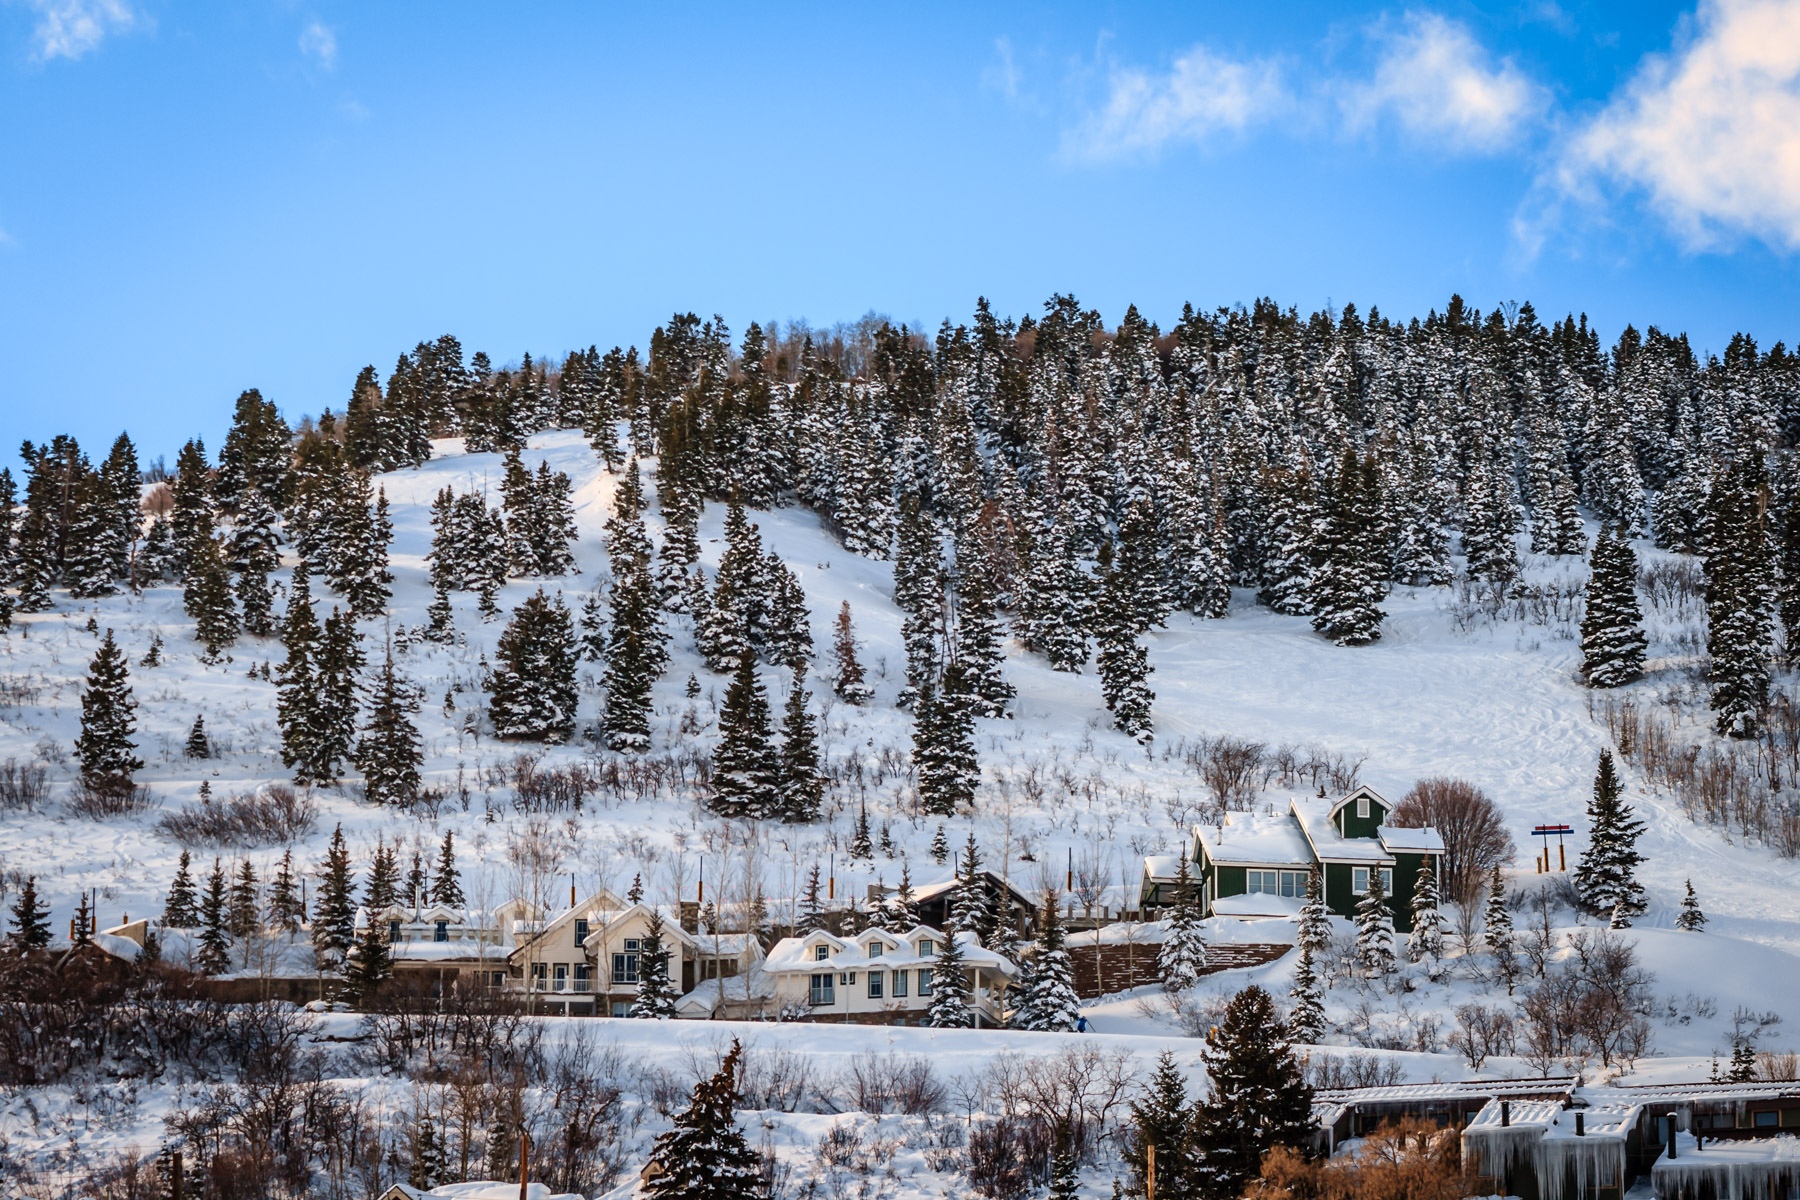 Snow-covered trees and houses in Park City, Utah.